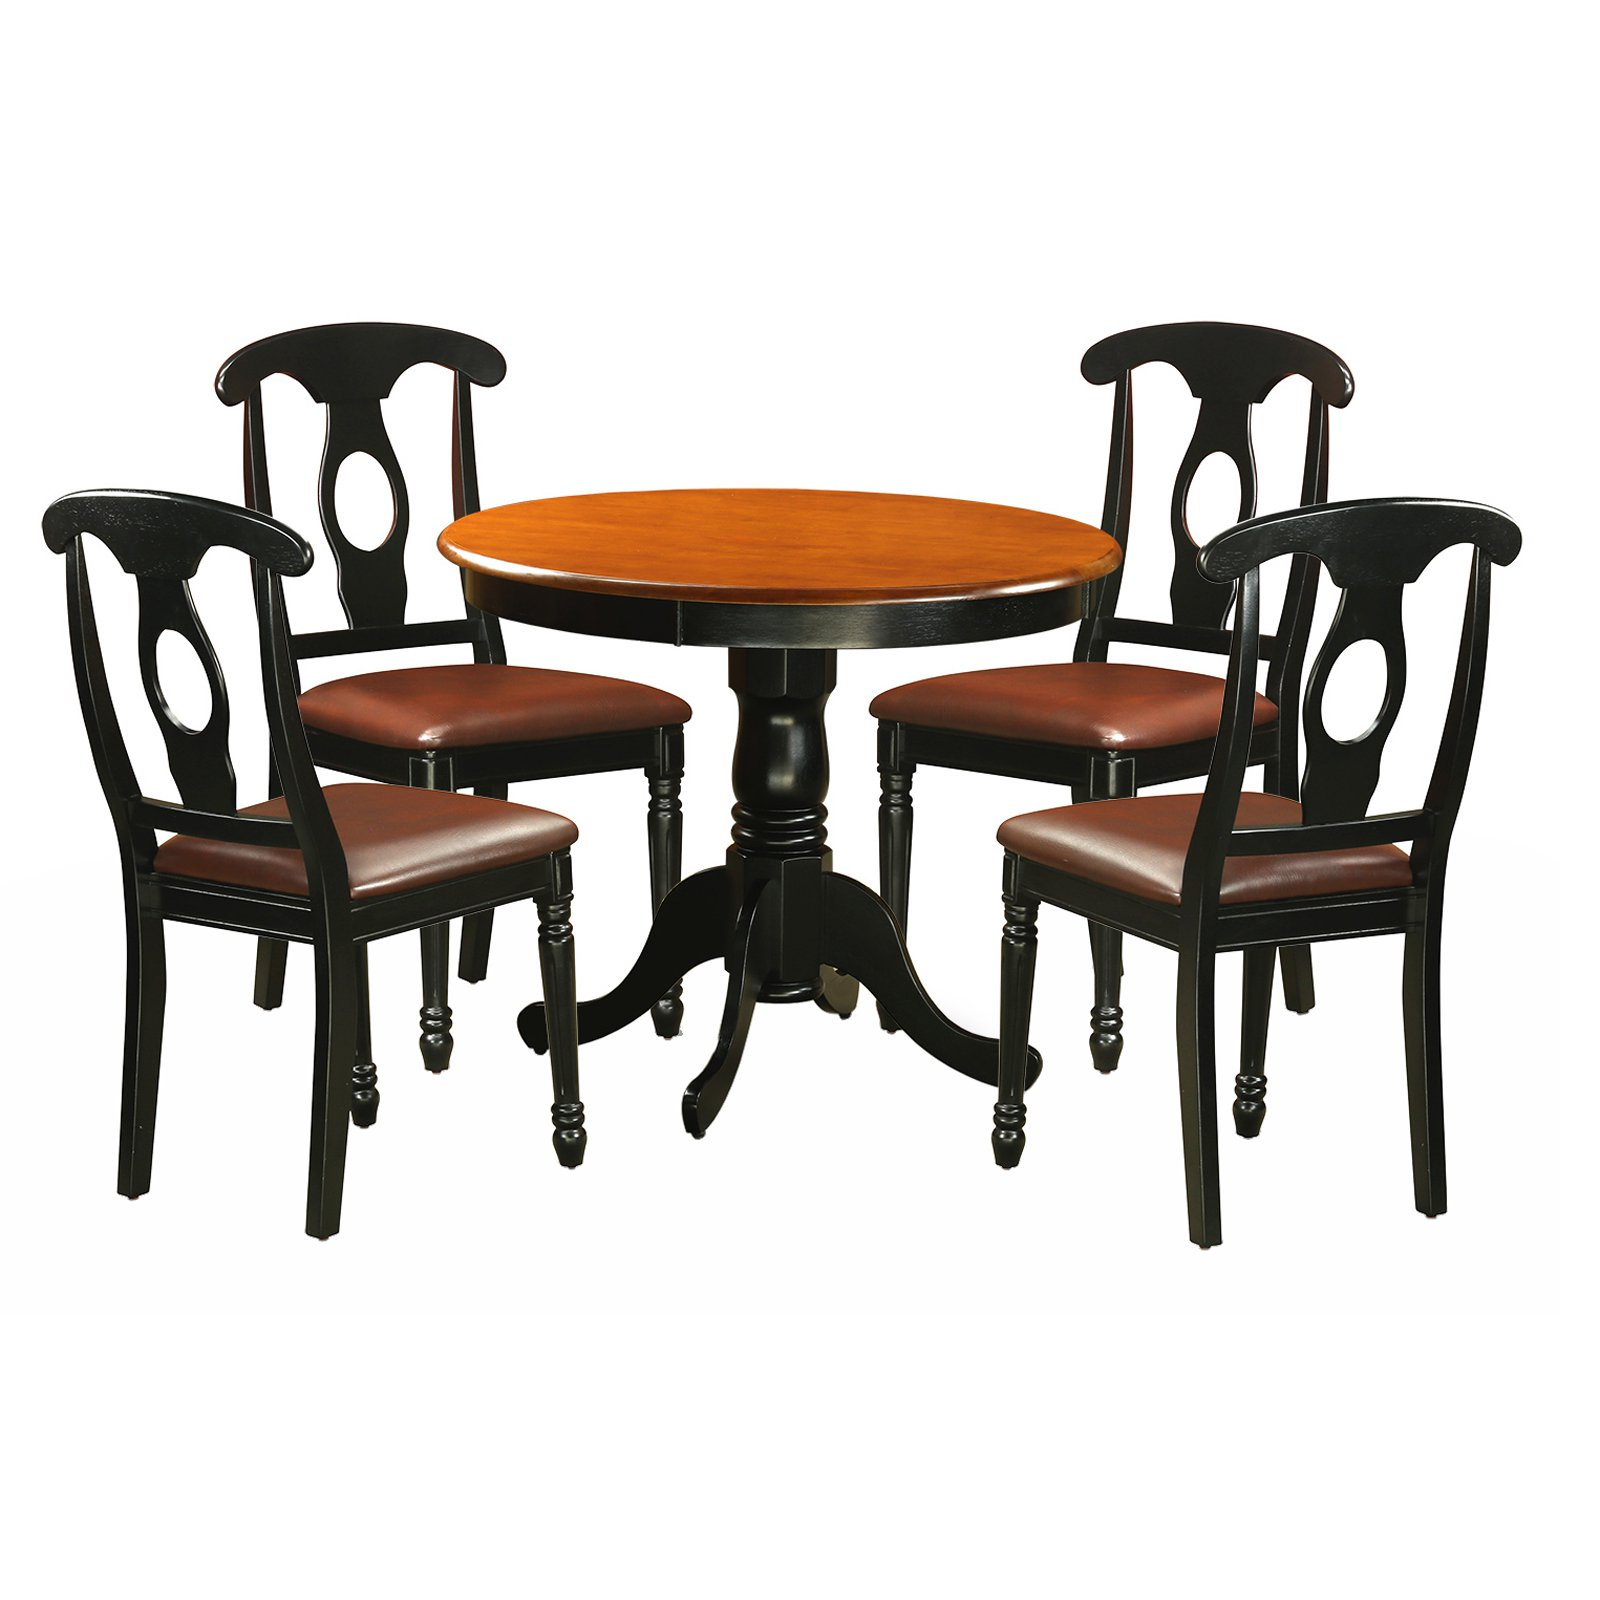 East West Furniture Antique 5 Piece Pedestal Round Dining Table Set with Kenley Faux Leather Seat Chairs